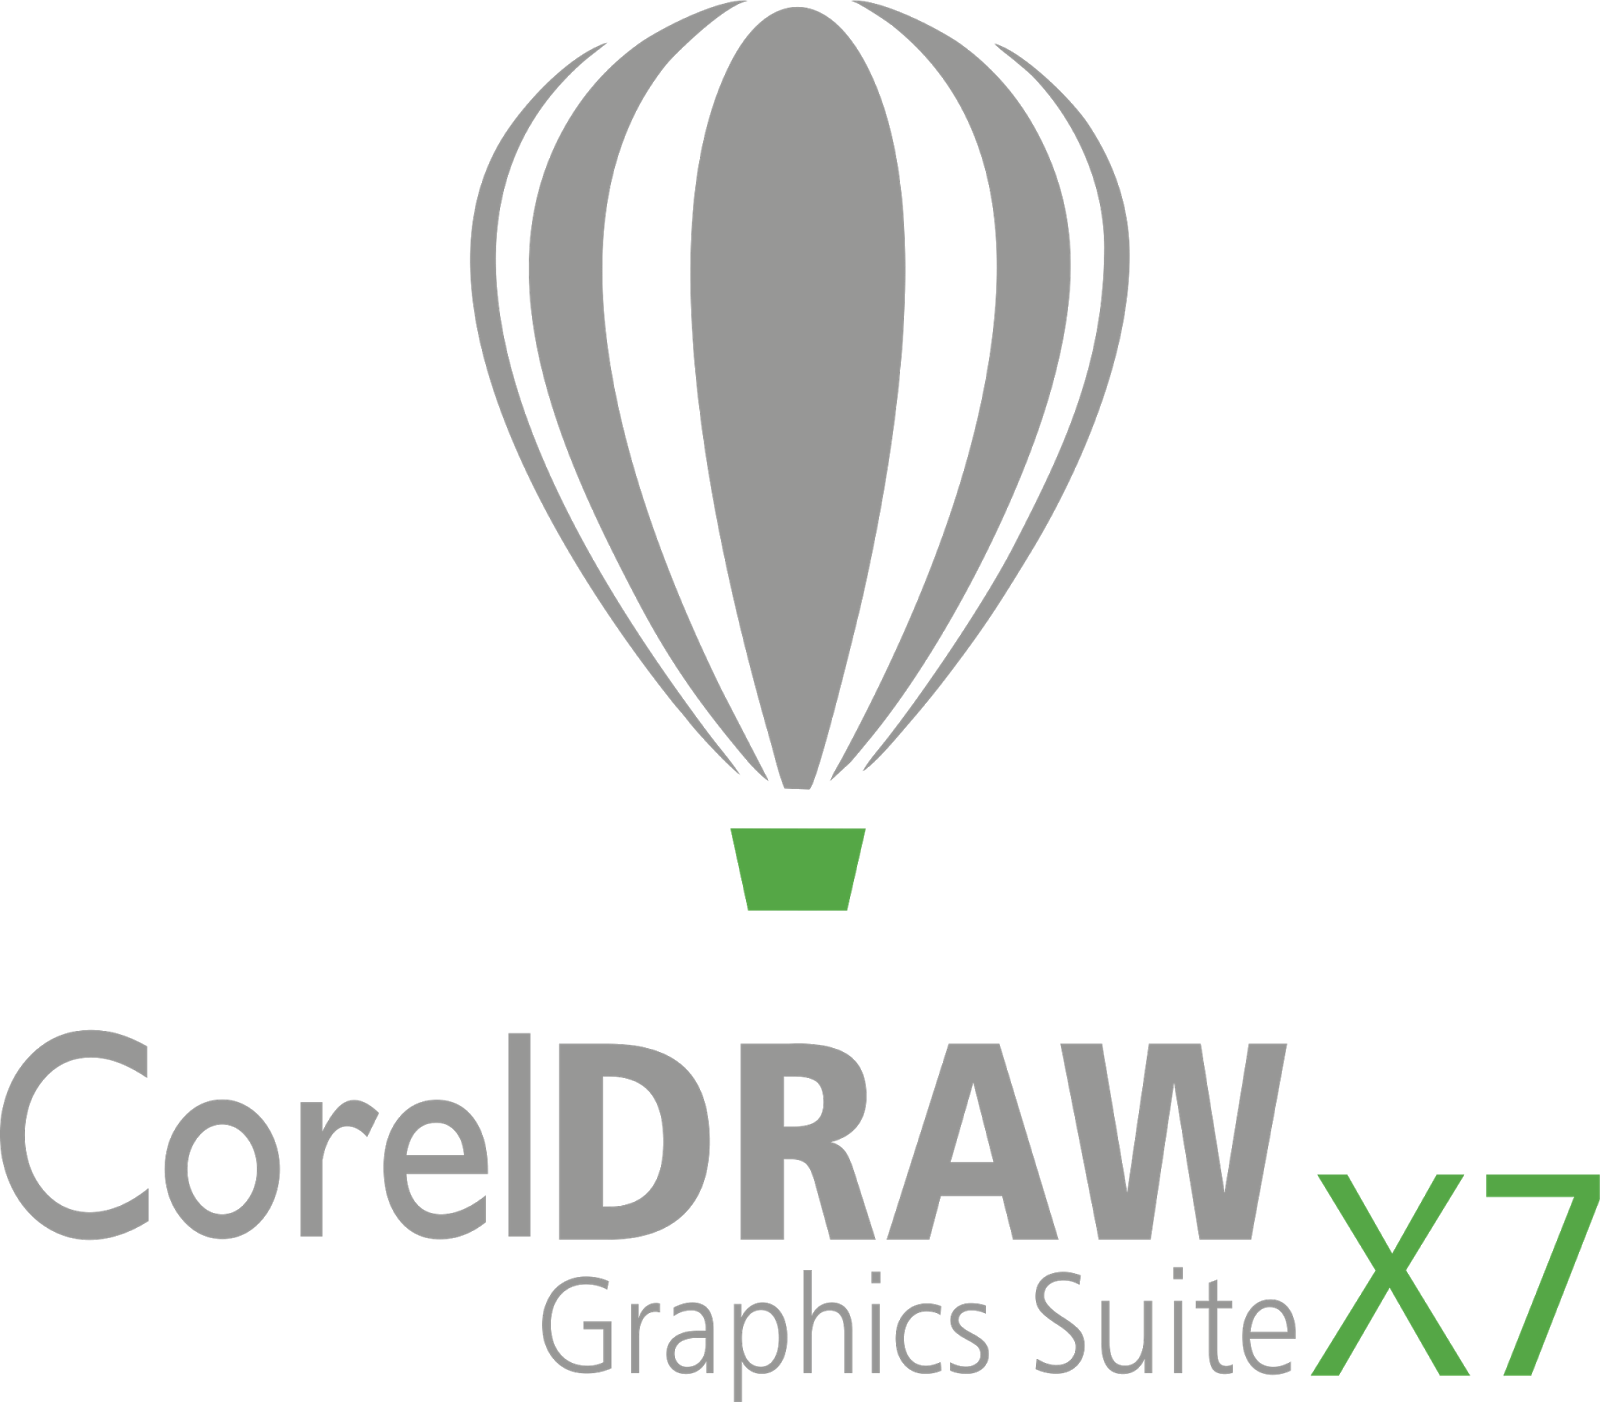 Coreldraw vector graphics - And The Next Software Is Coreldraw Coreldraw Is A Vector Graphics Editor Developed And Marketed By Corel Corporation Of Ottawa Canada